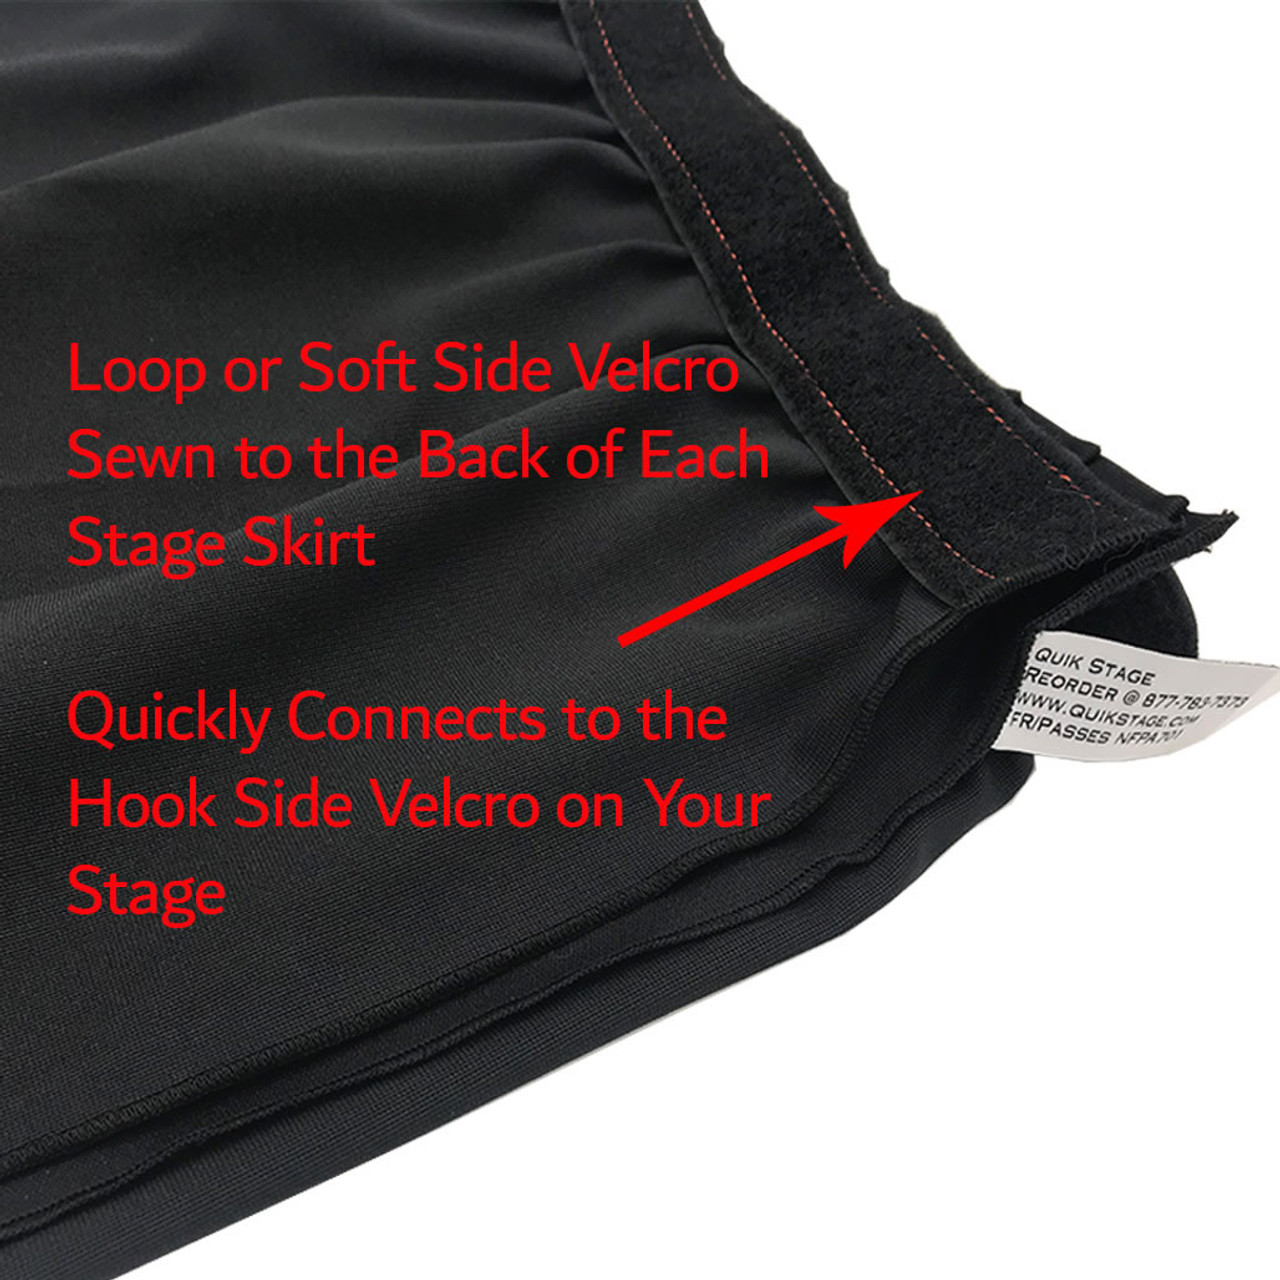 40 Inches High Best Value Black Expo Pleat Polyester Stage Skirting with Velcro. FR Rated. - Loop Velcro sewn on back.